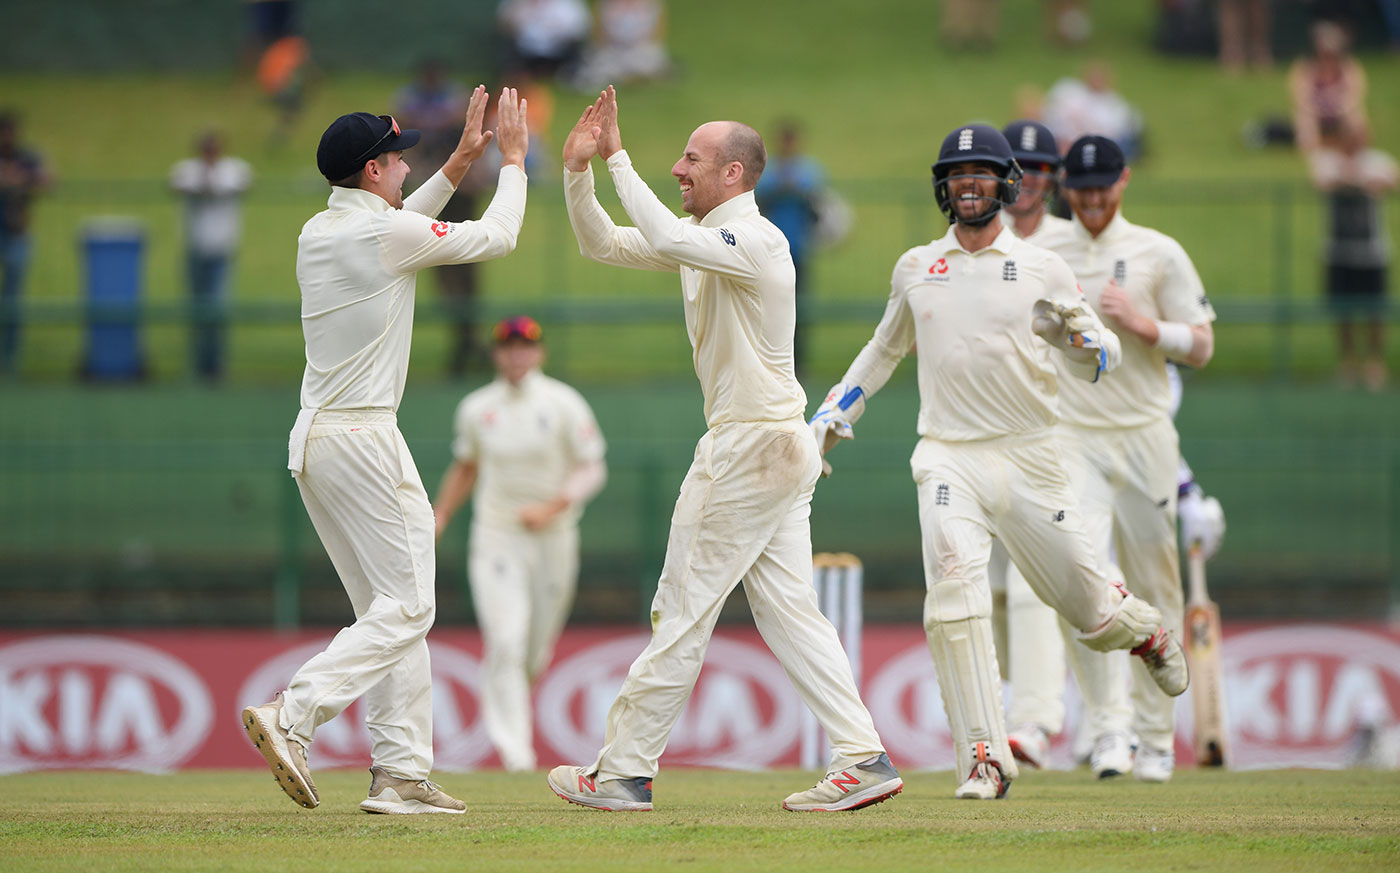 England Topple South Africa To Second Spot In Test Rankings, India On Top